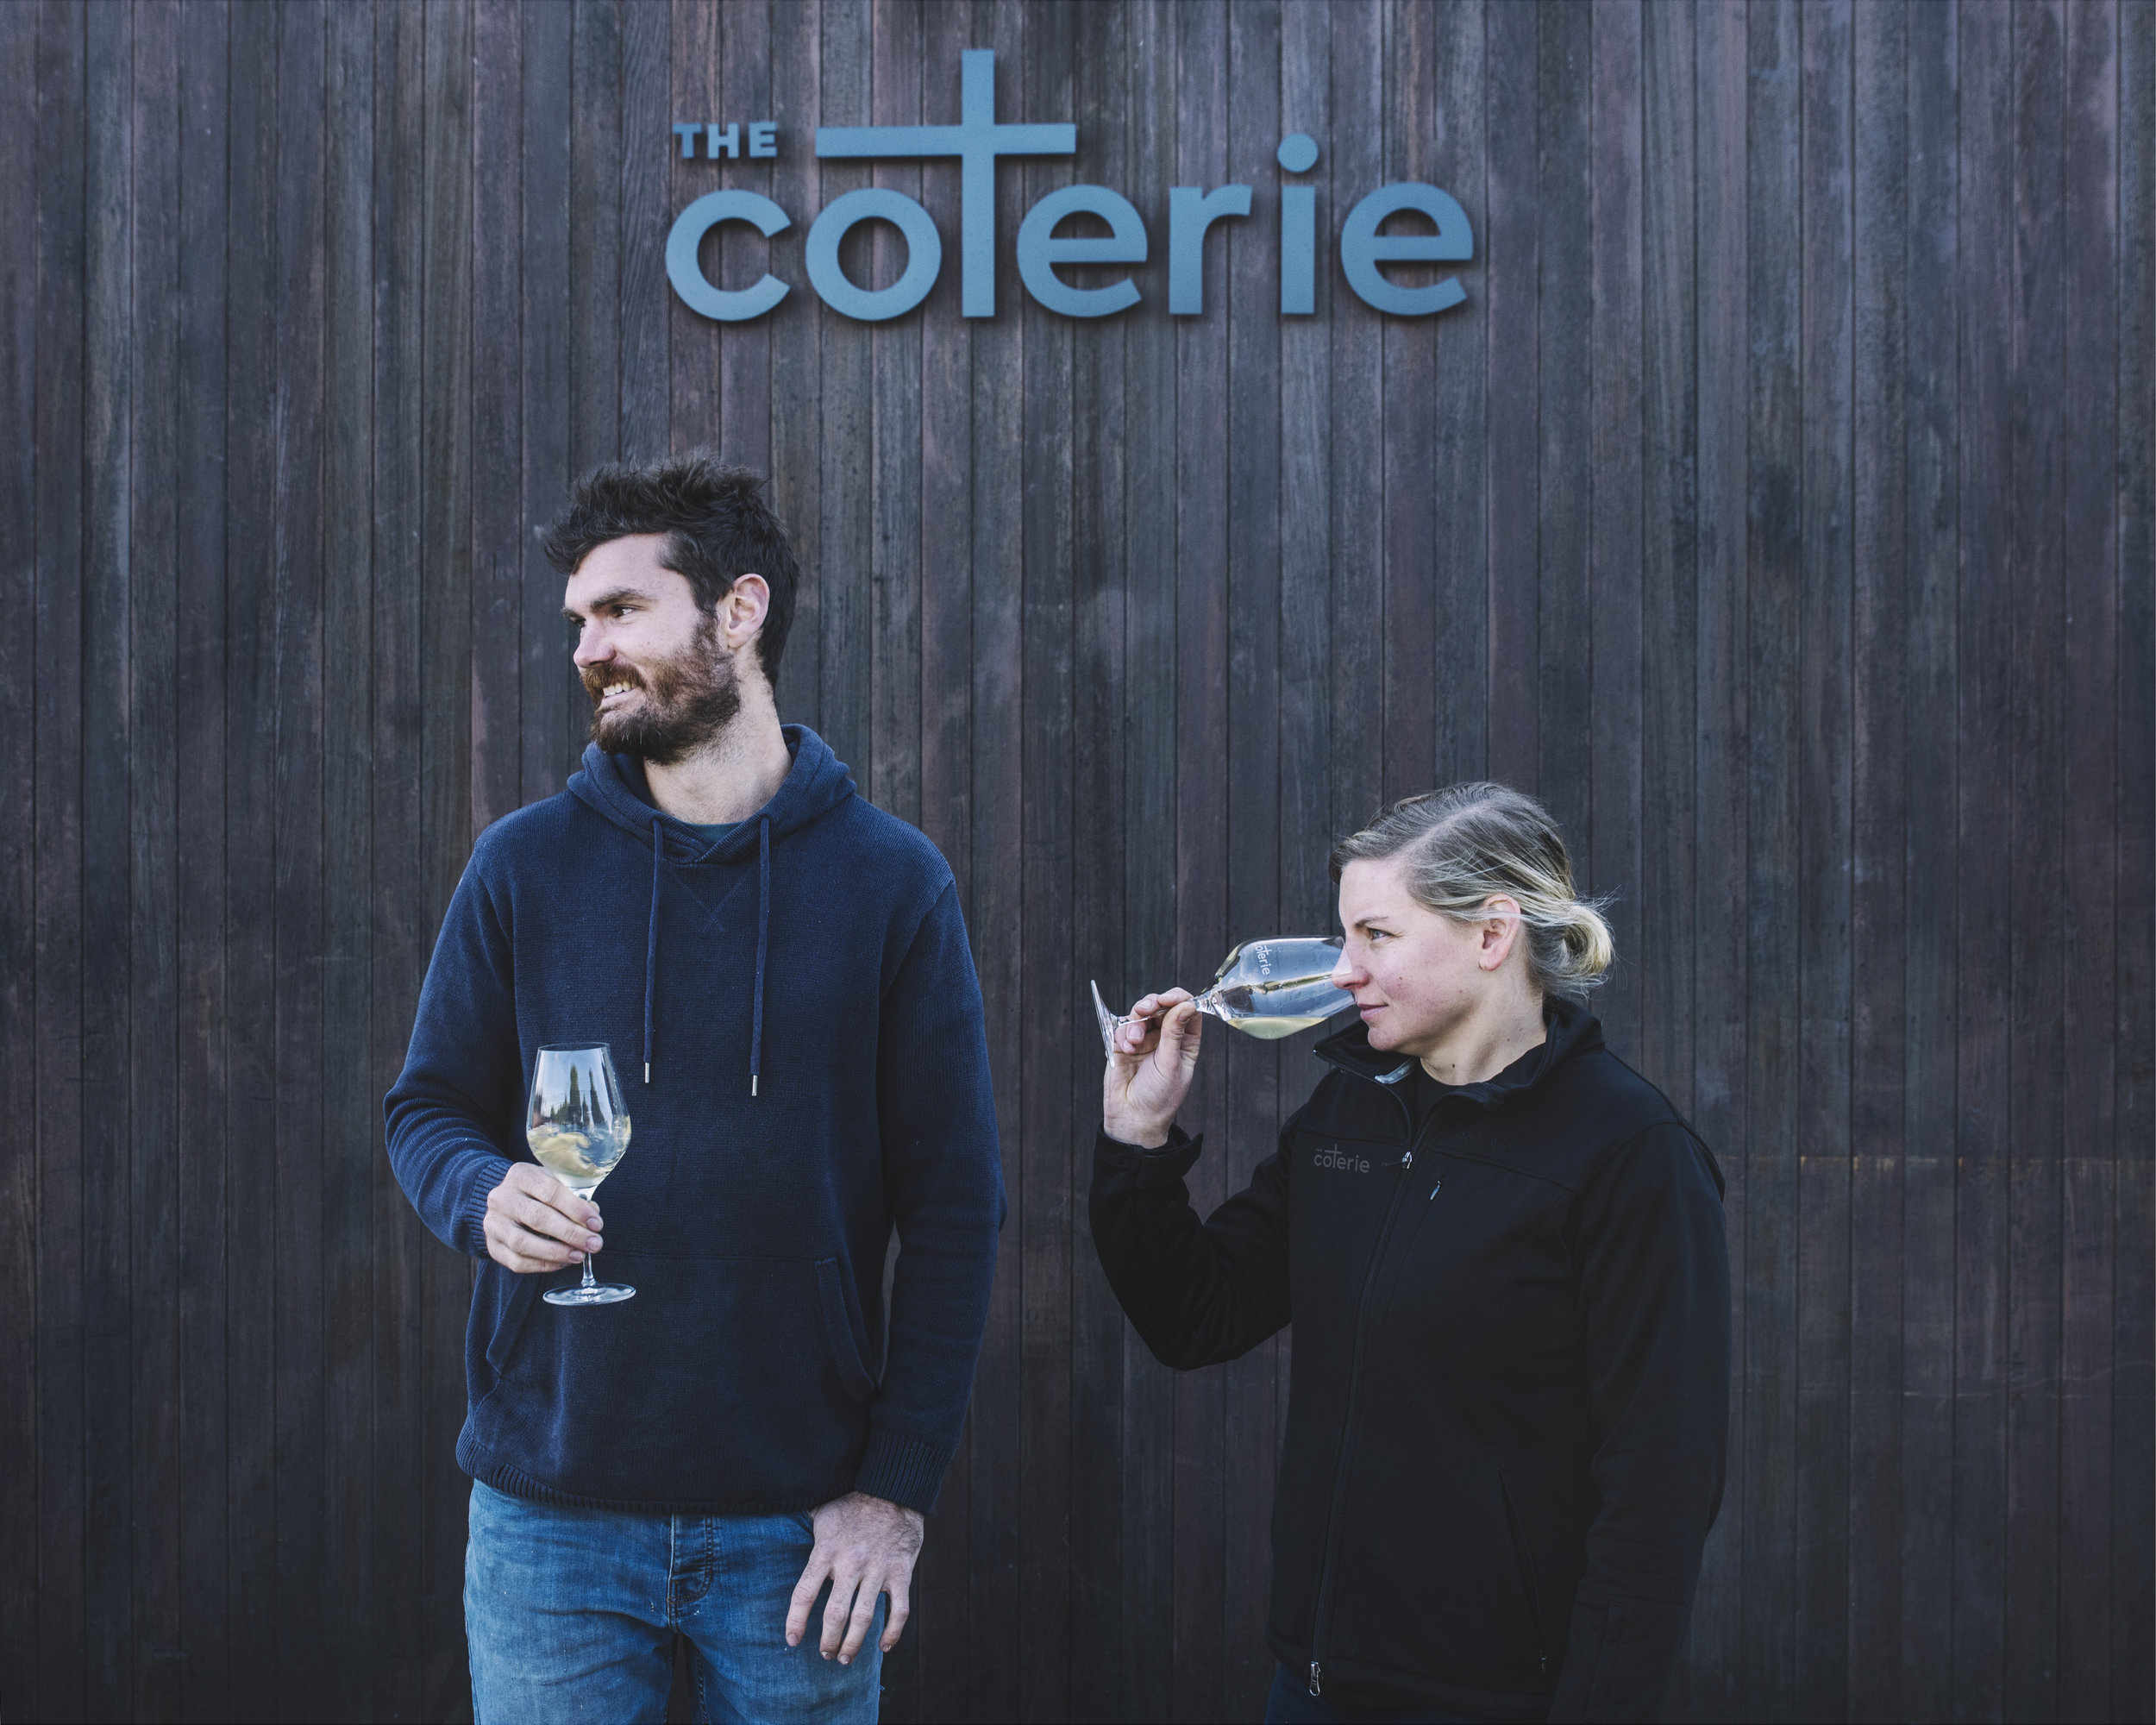 The Coterie small batch premium contract winemaking - clients